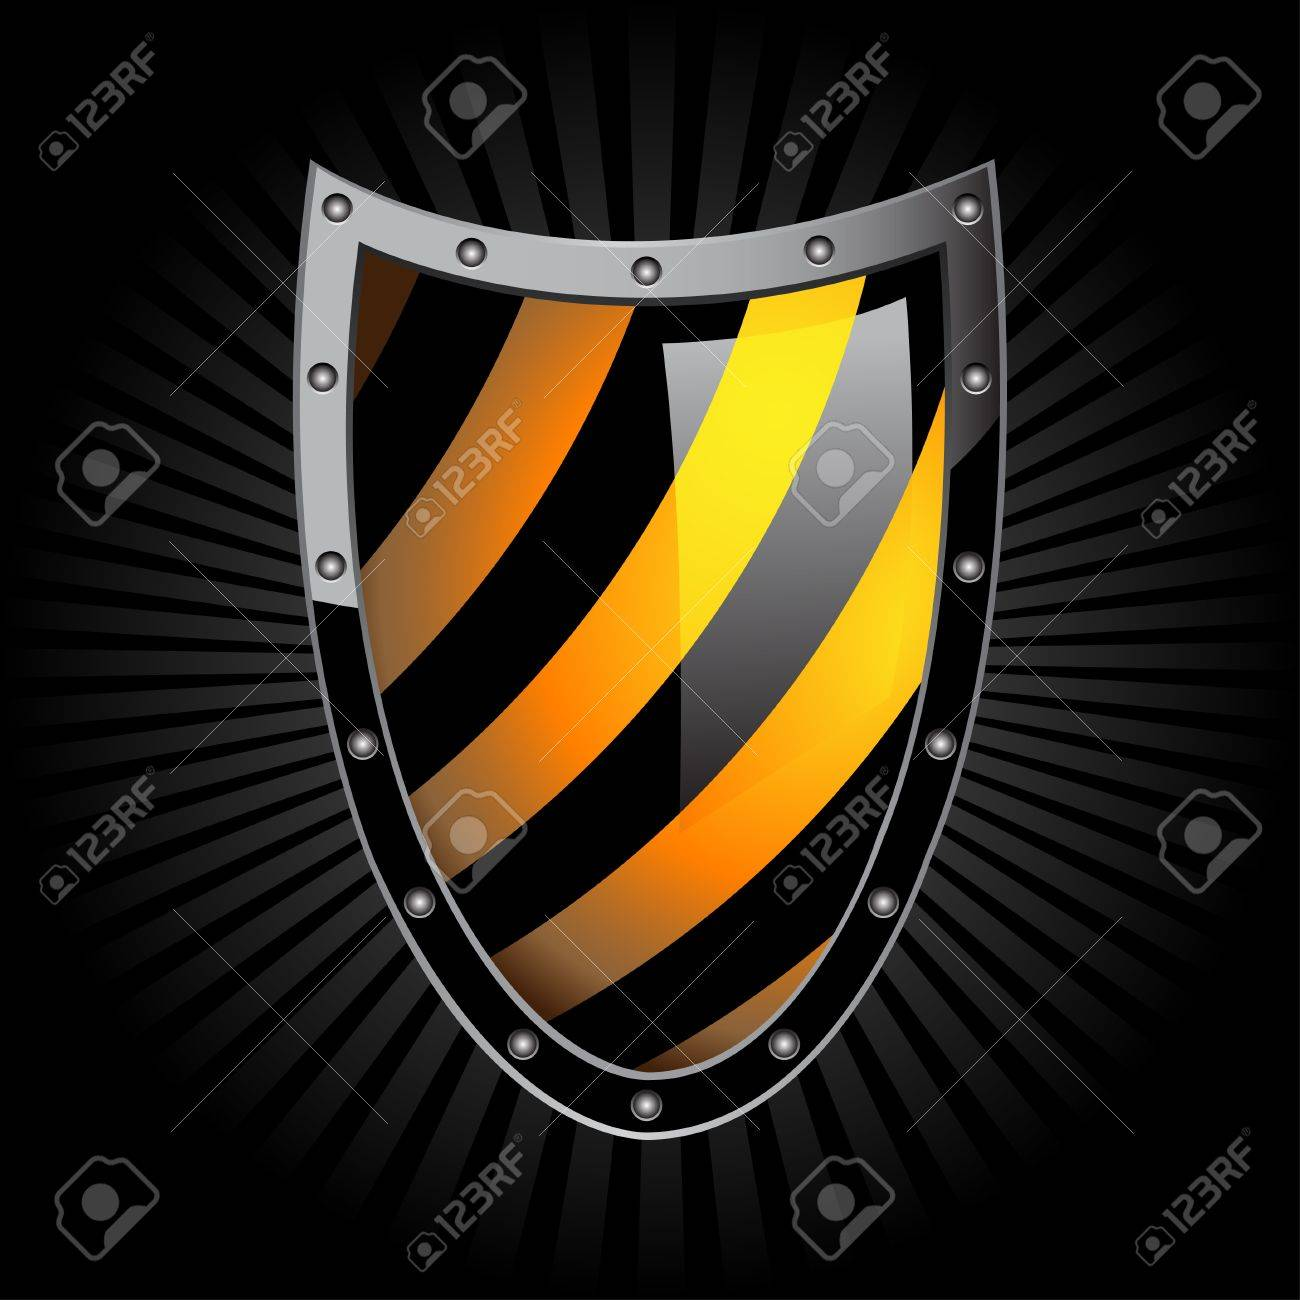 Illustration of the shield on a black background. Stock Vector - 10613180